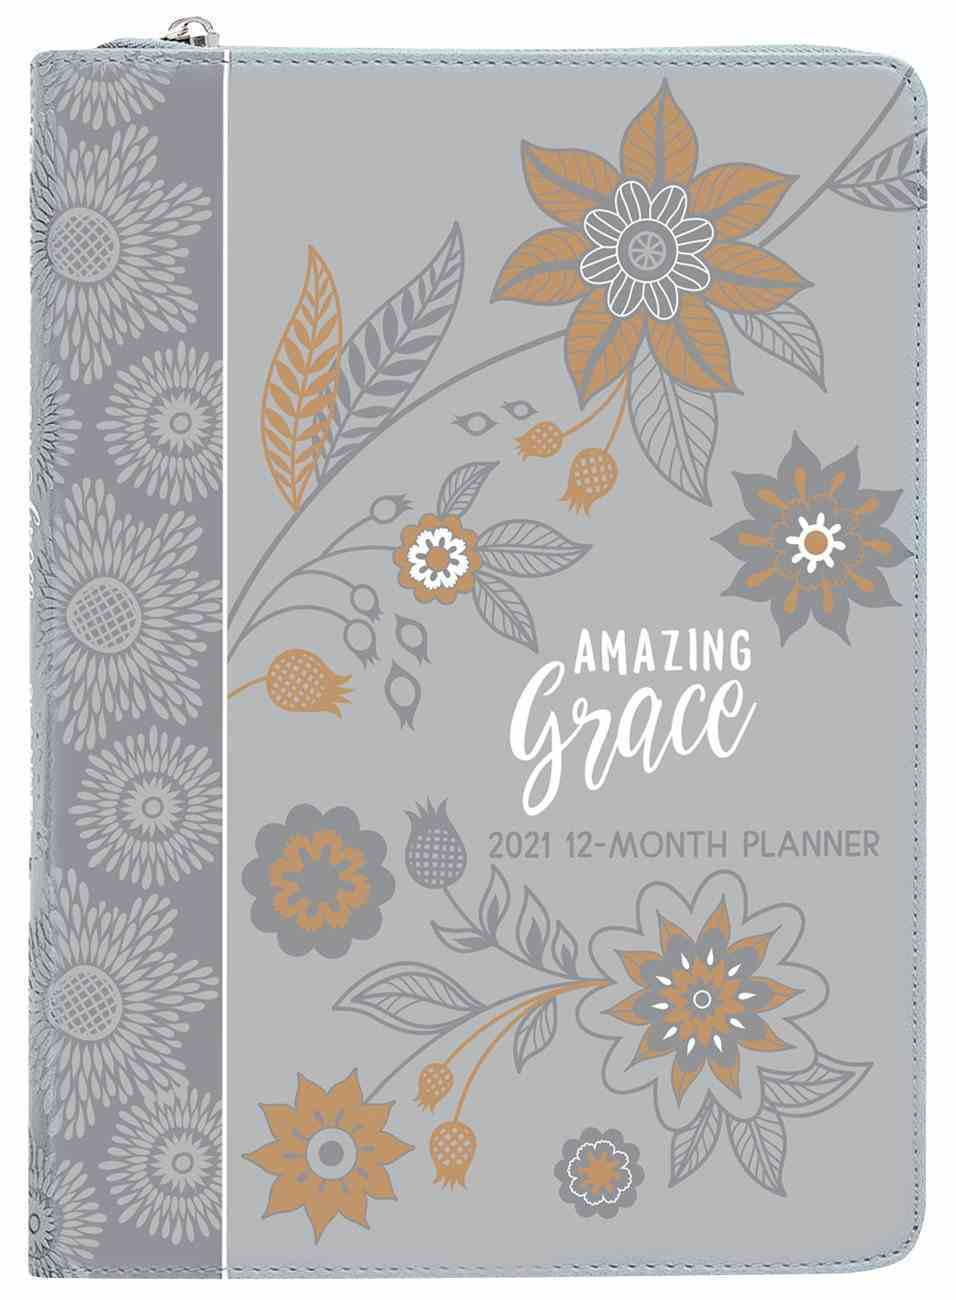 2021 12-Month Weekly Diary/Planner: Amazing Grace (Gray) Imitation Leather